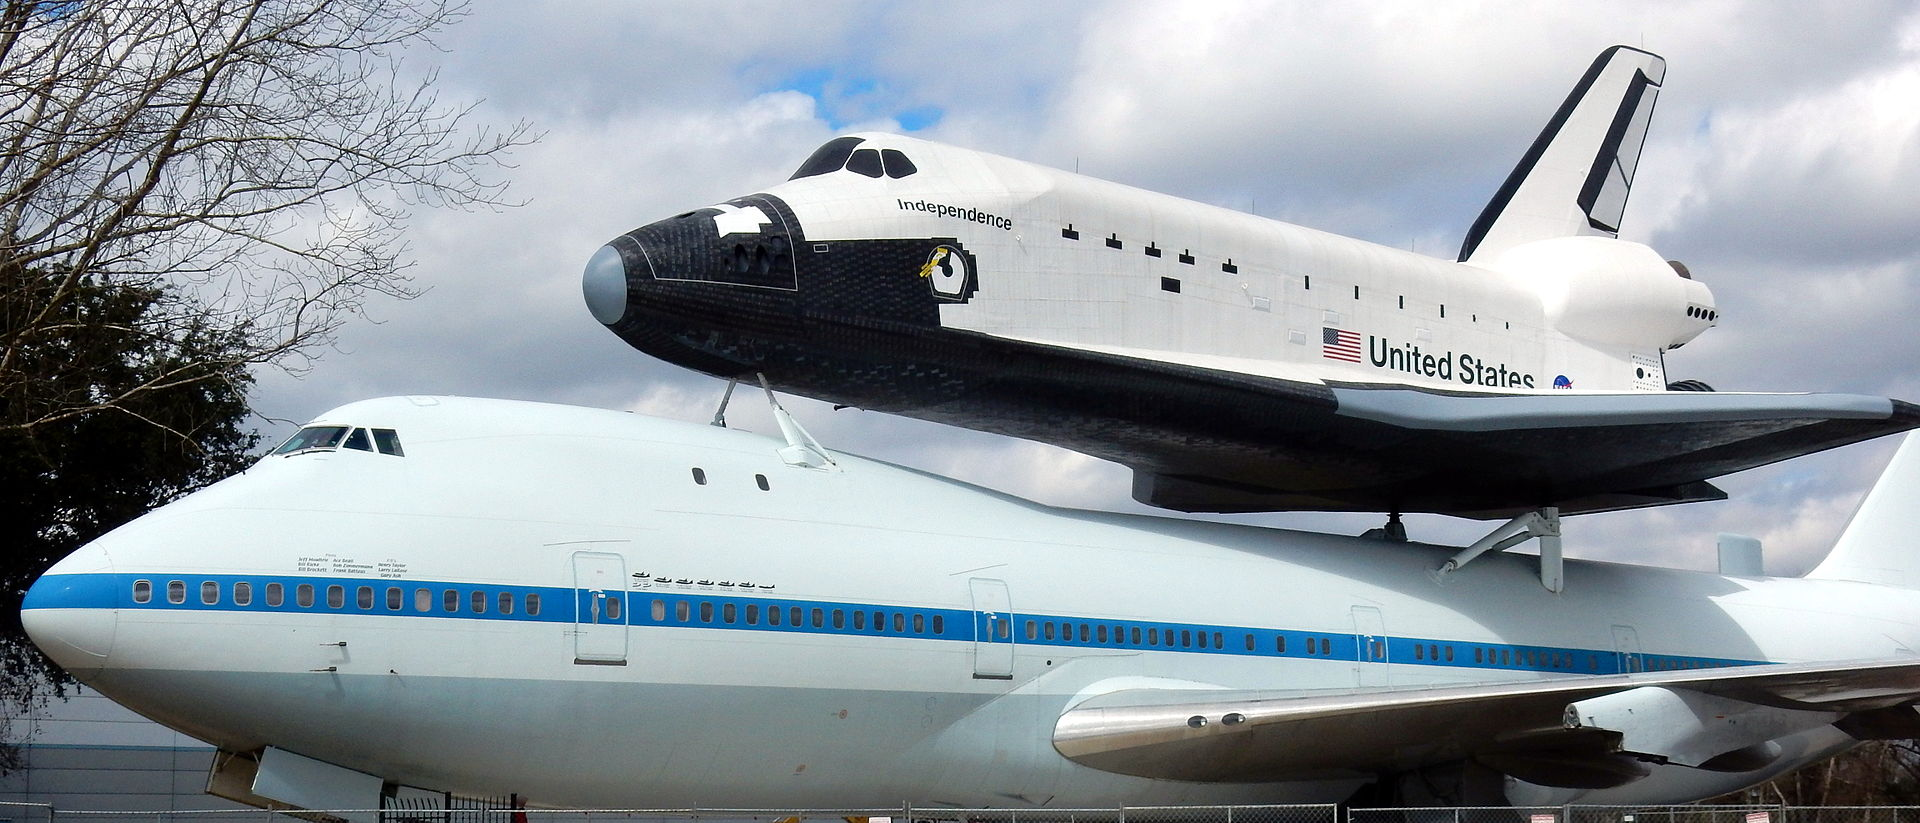 Visitors can enter both the replica of the shuttle Independence and the original shuttle carrier plane.